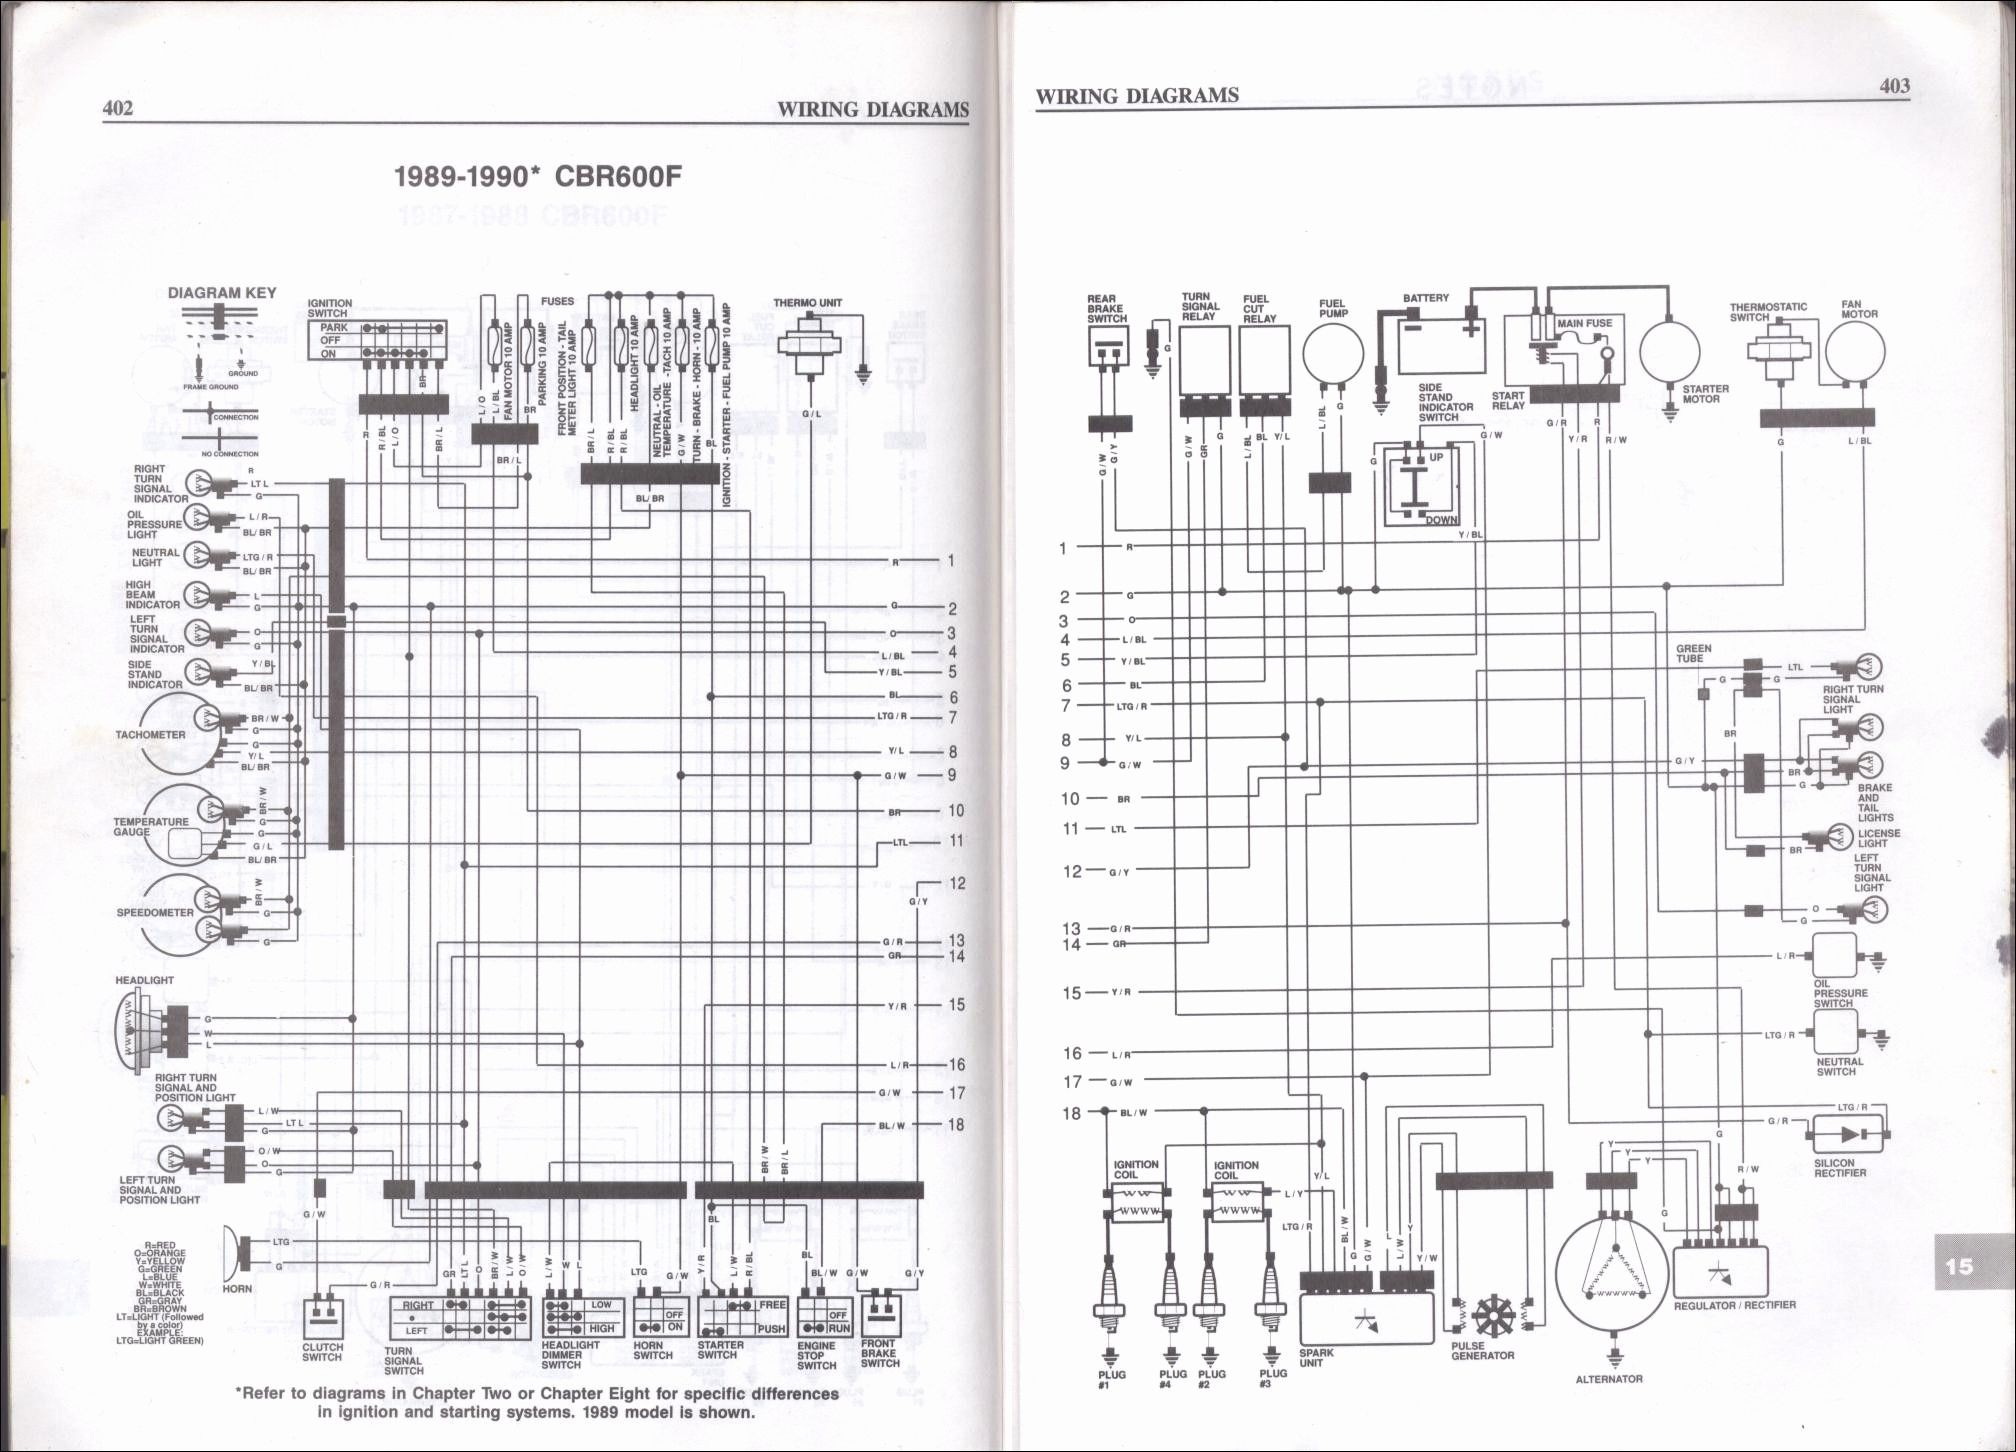 Light Switch Wiring Super M Tractor Honda C70 Wiring Diagram Auto Electrical Wiring Diagram Of Light Switch Wiring Super M Tractor